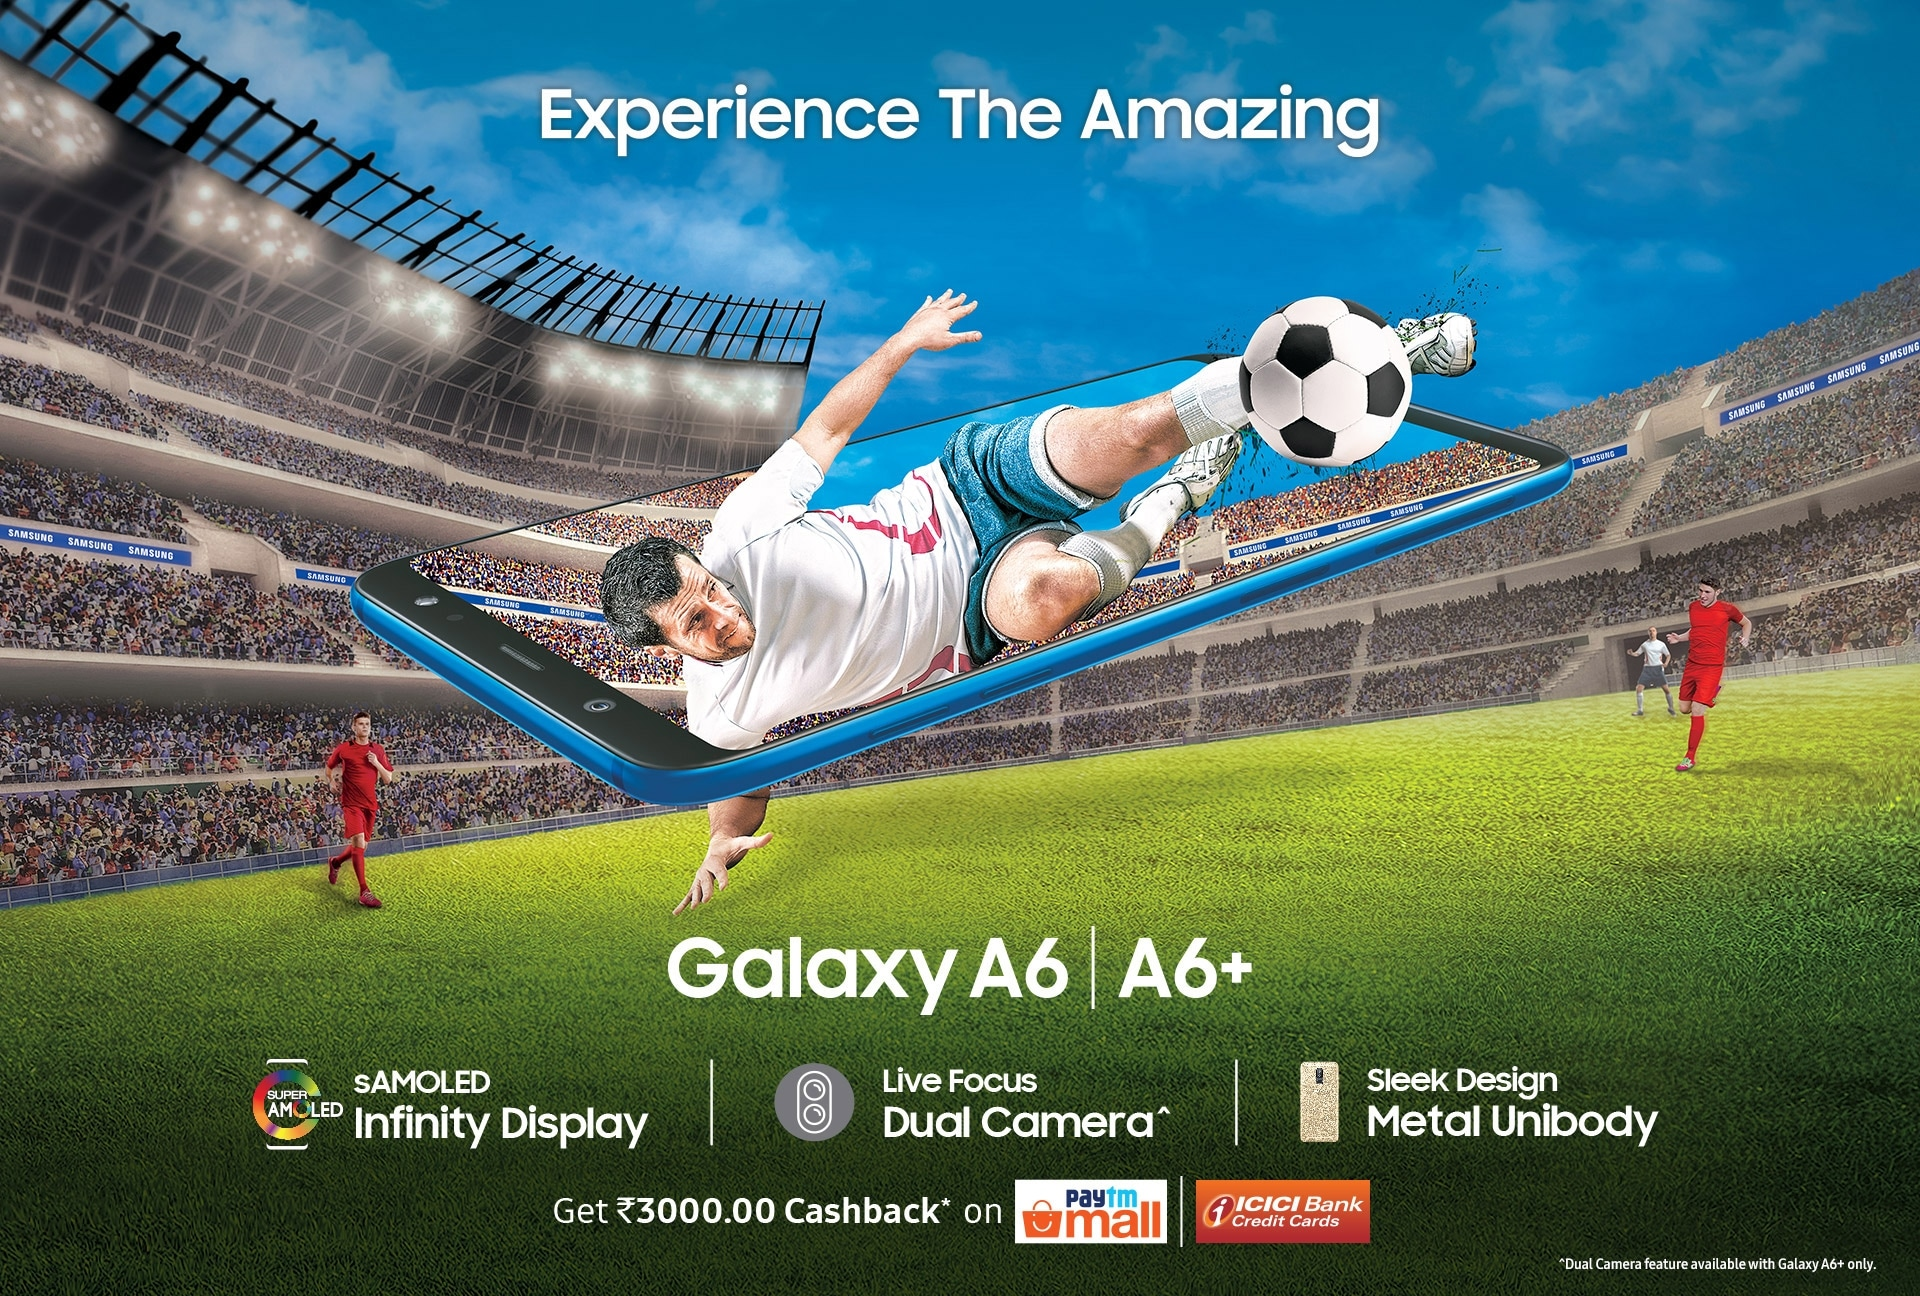 Try out Samsung Galaxy A6 and A6+ in Samsung Experience Stores